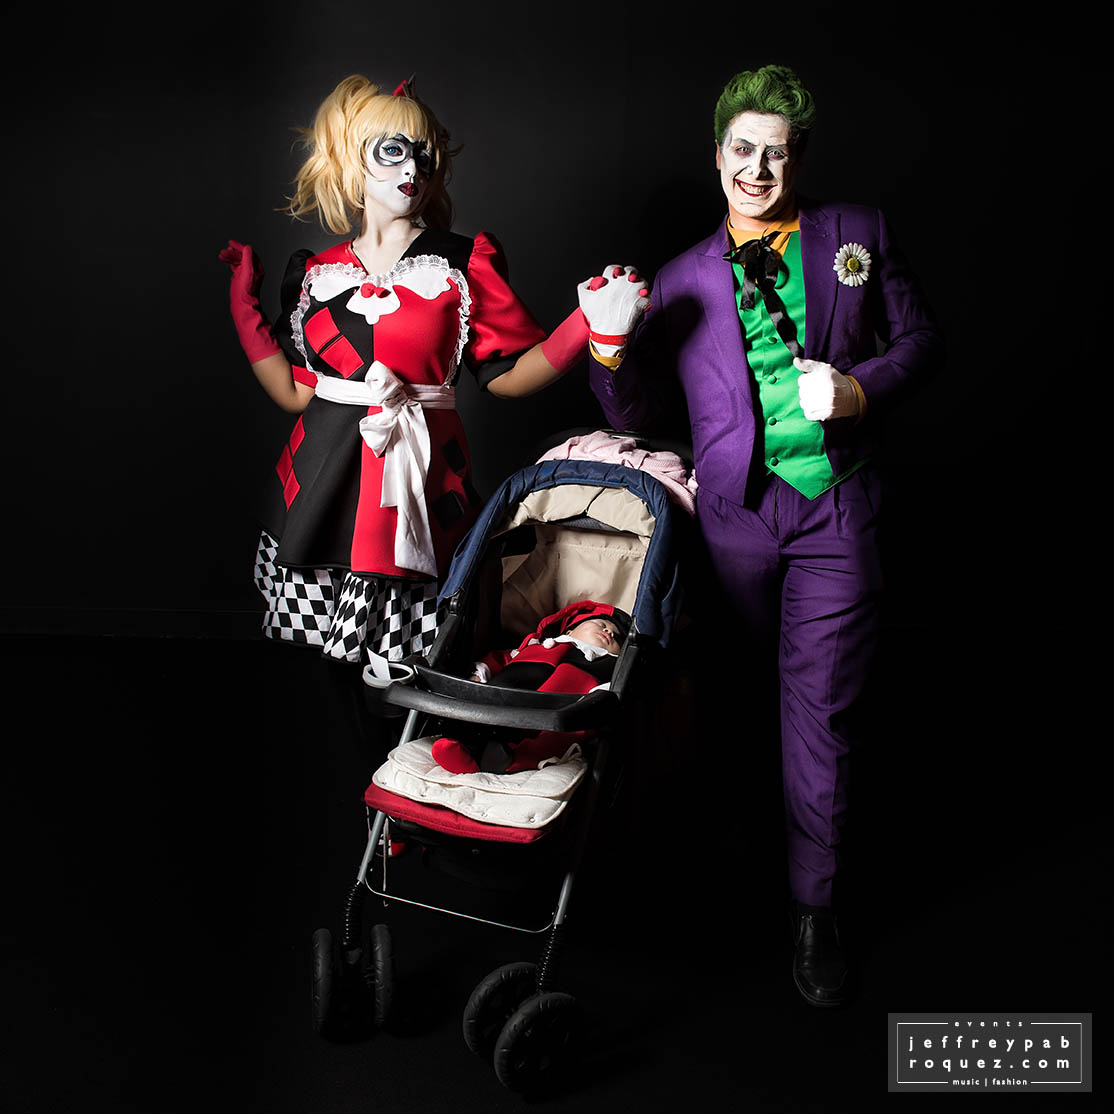 Joker & The Harley Quinns